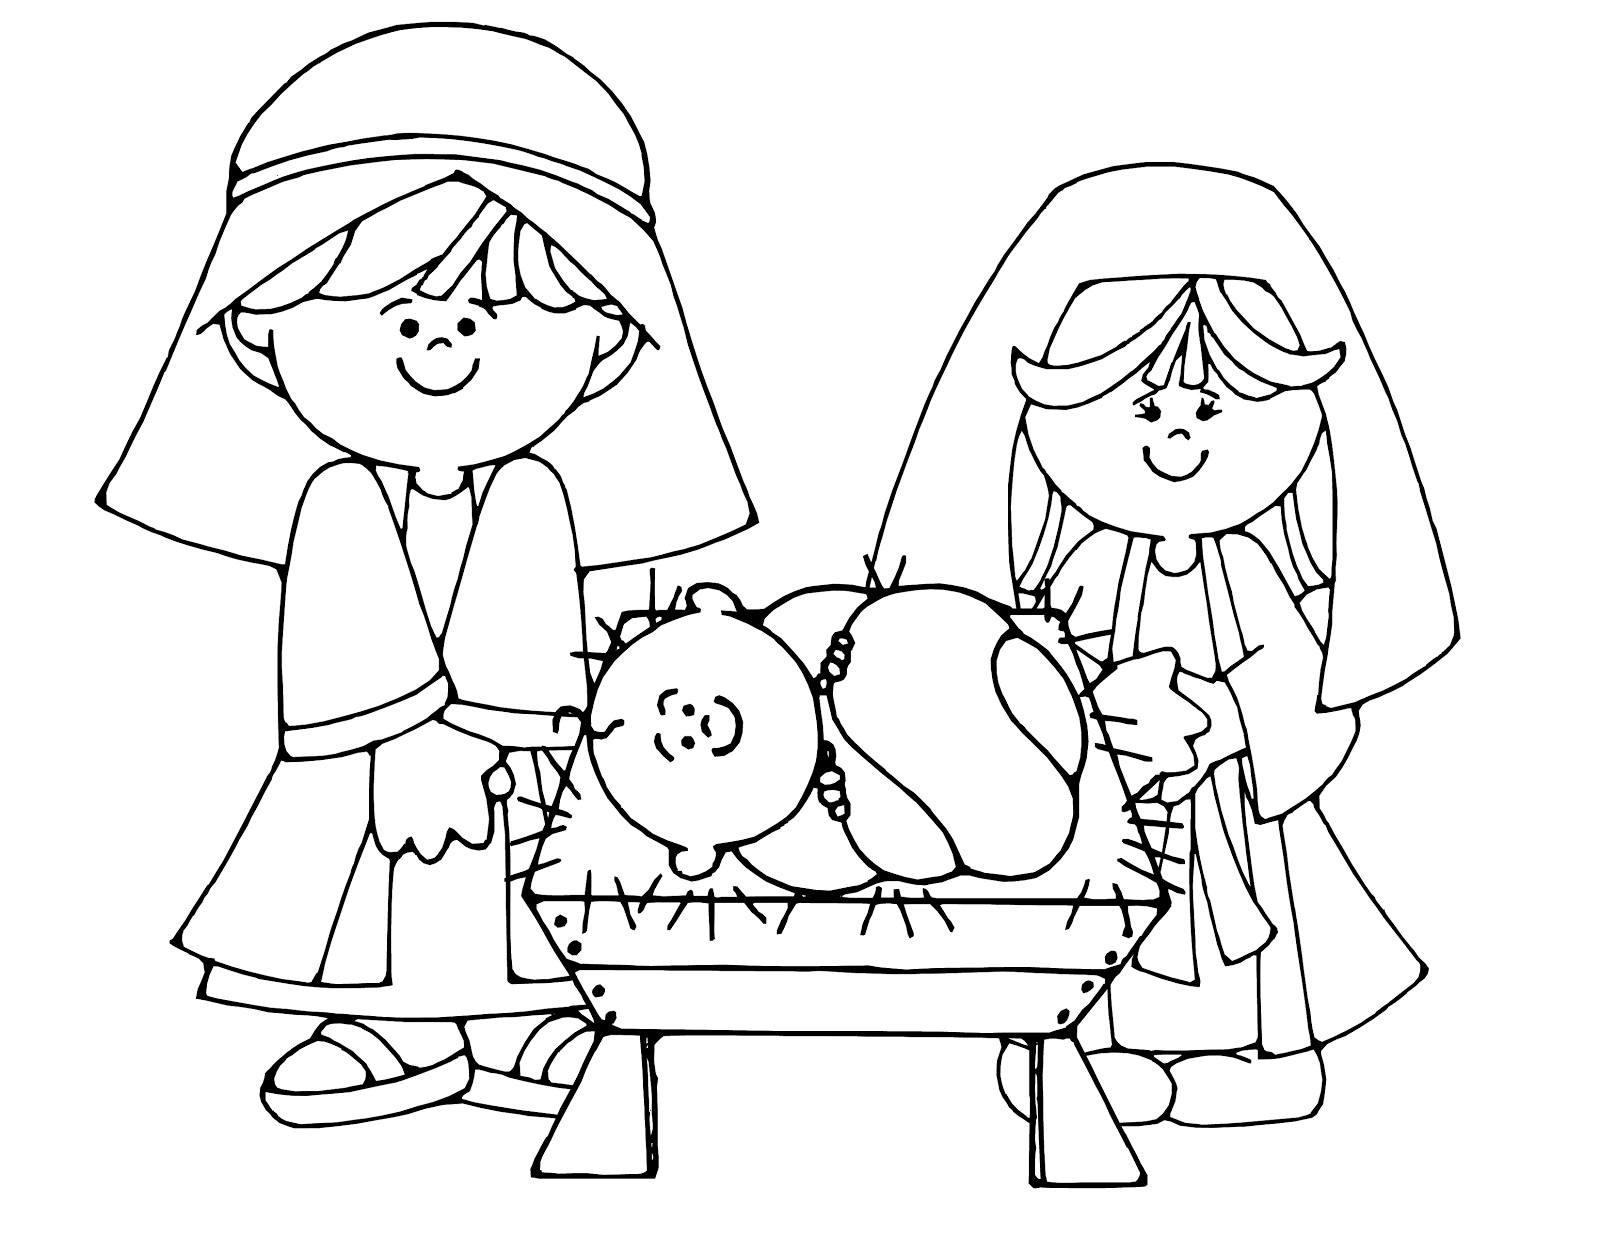 simple nativity scene colouring page (With images